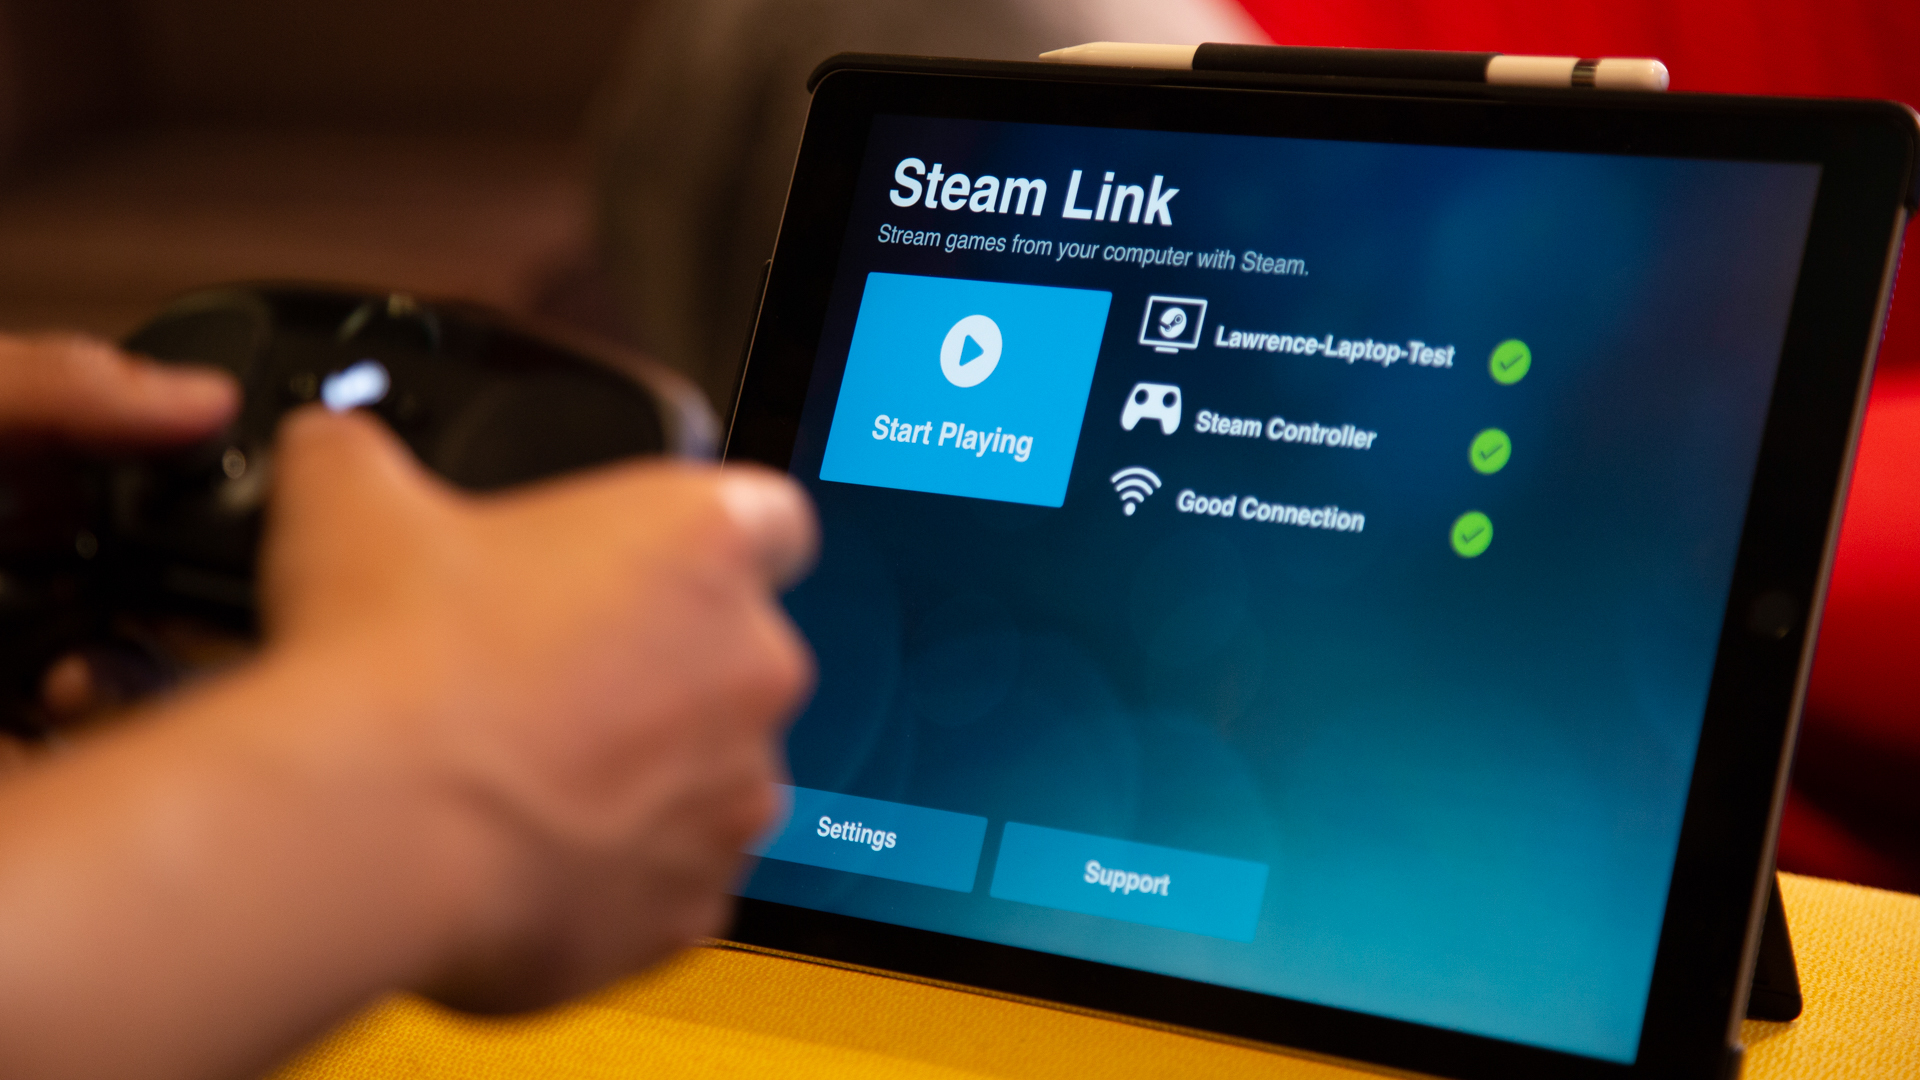 Steam Remote Play now allows you to play games Anywhere